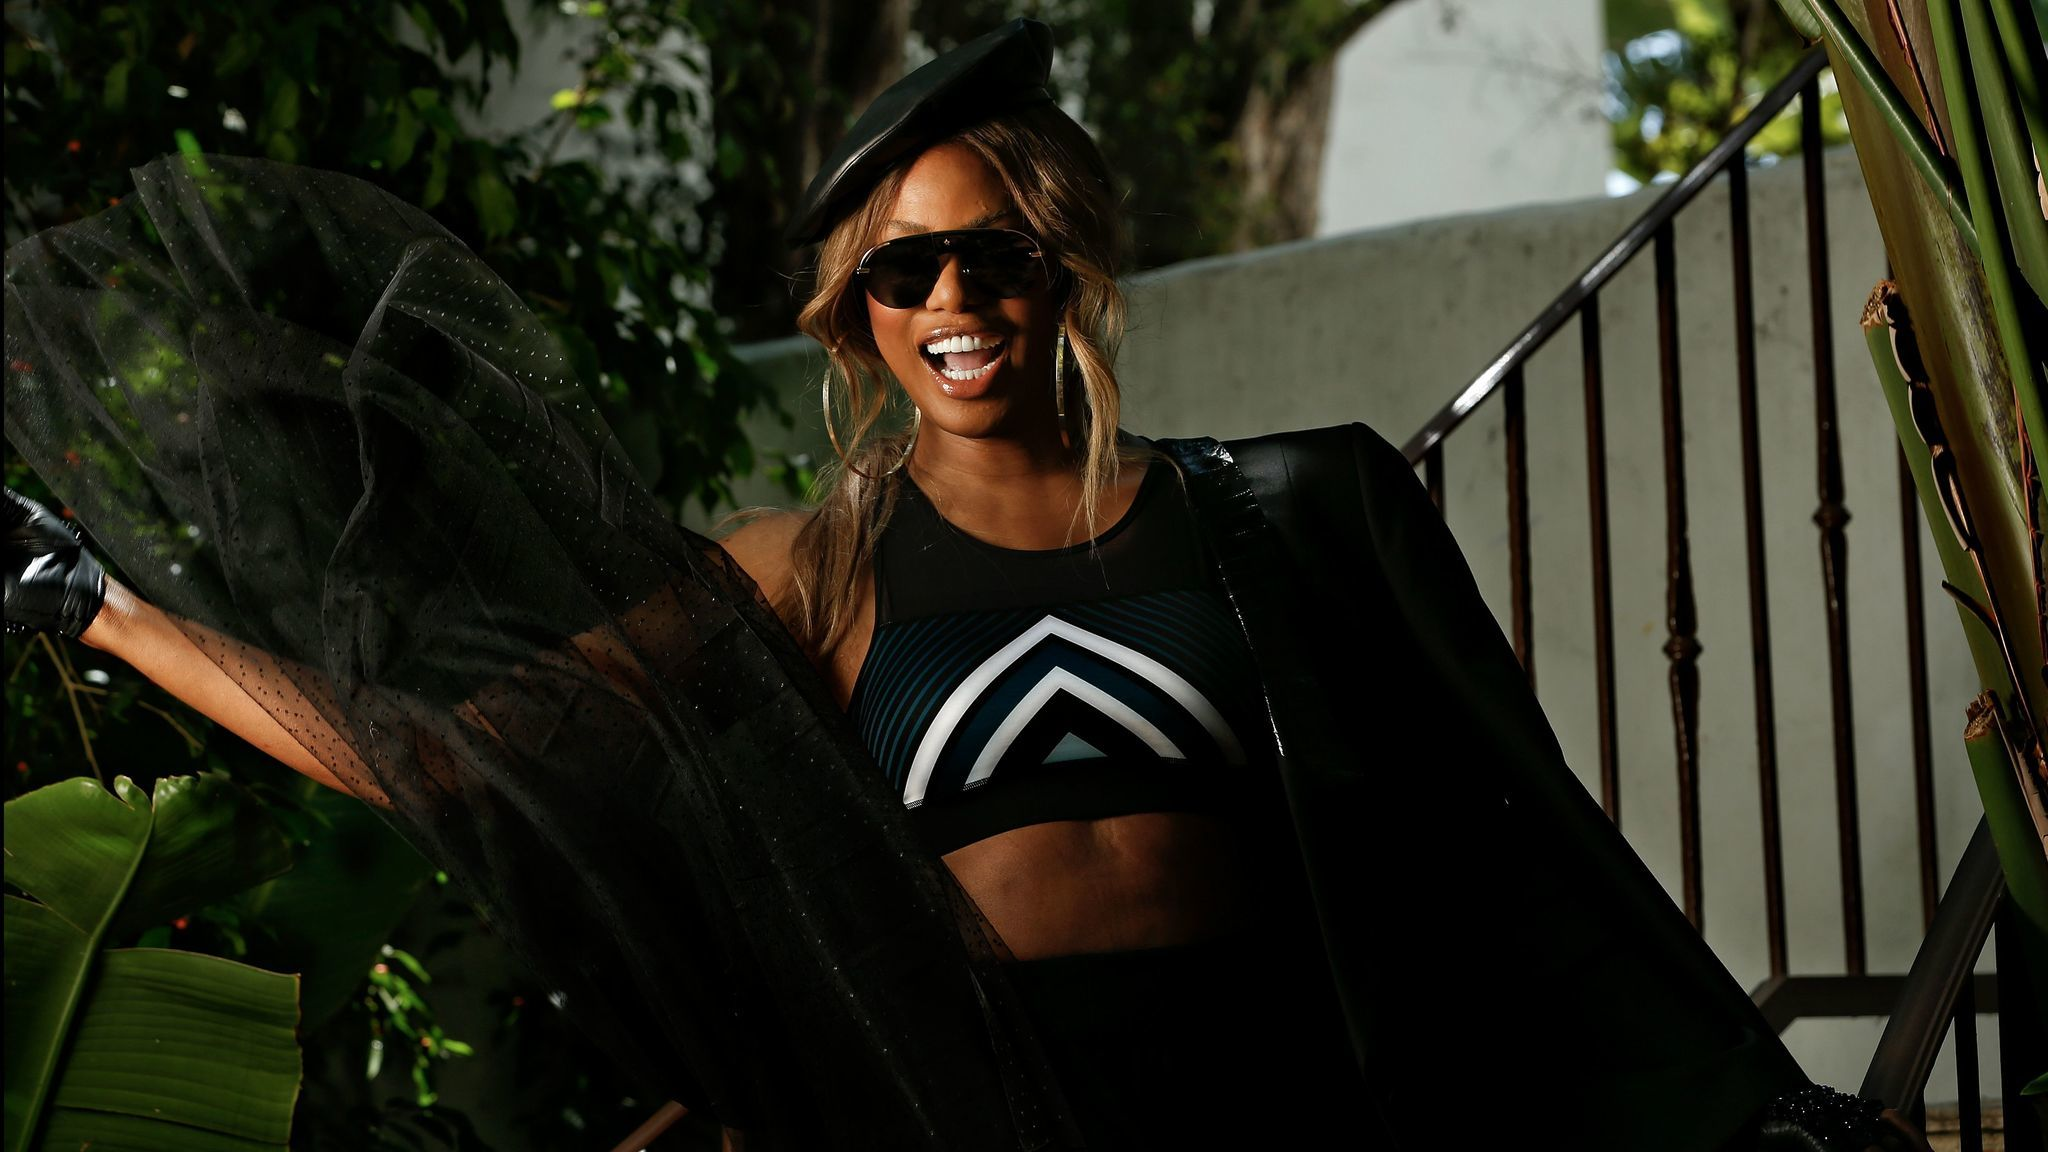 Laverne Cox wears selections from Ivy Park's fall collection, which is available at Nordstrom, Topshop and other retailers.